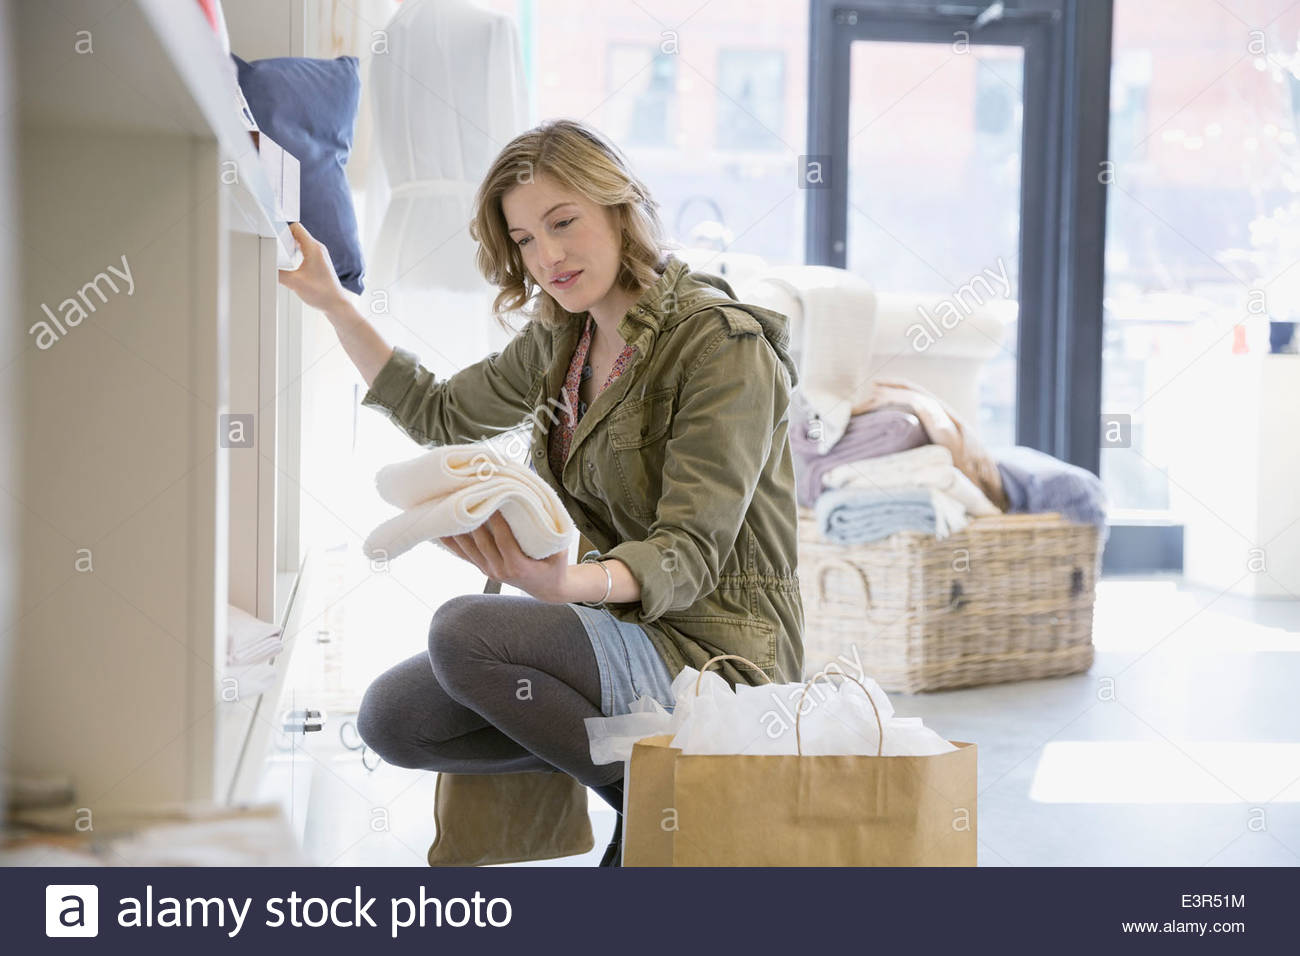 Woman looking at towels in shop - Stock Image